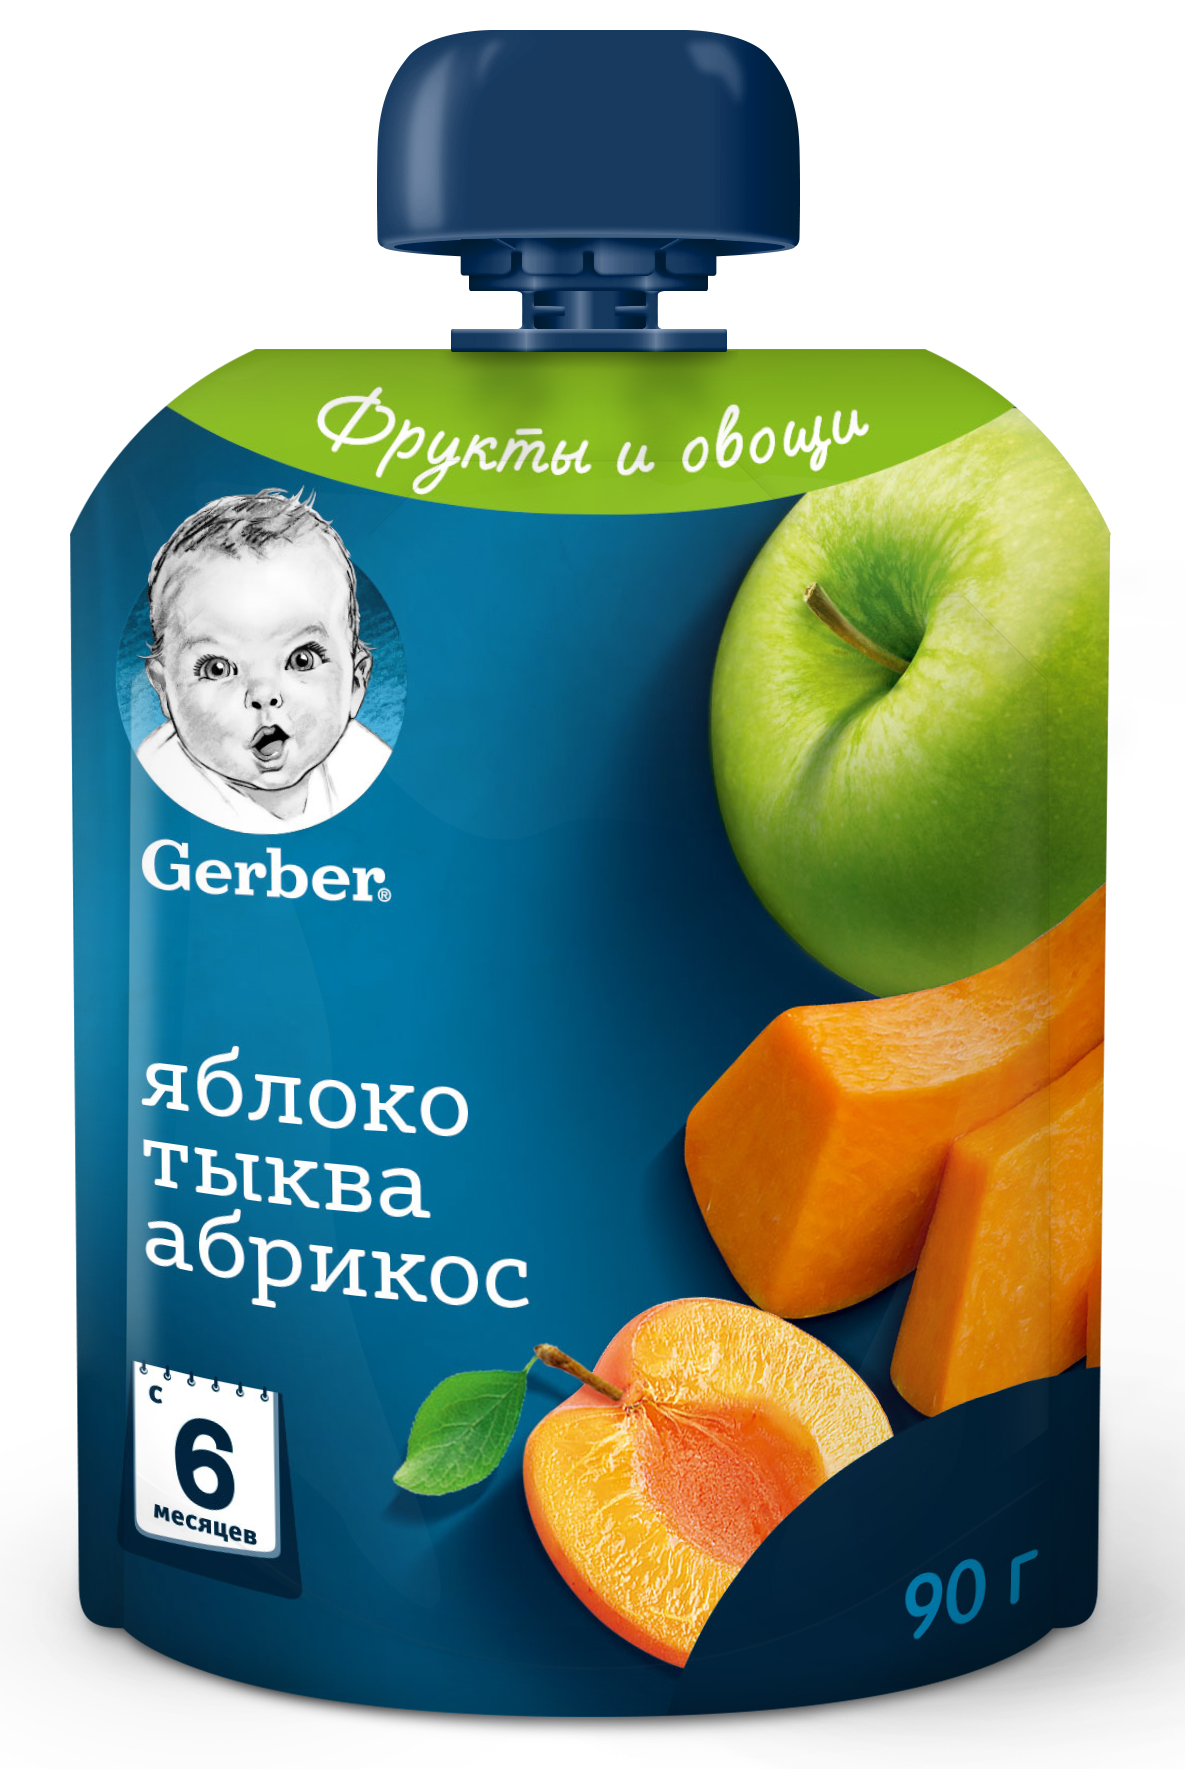 004_Gerber_all_pouch_90g_Apple_Squash_Apricot_v1_mockup